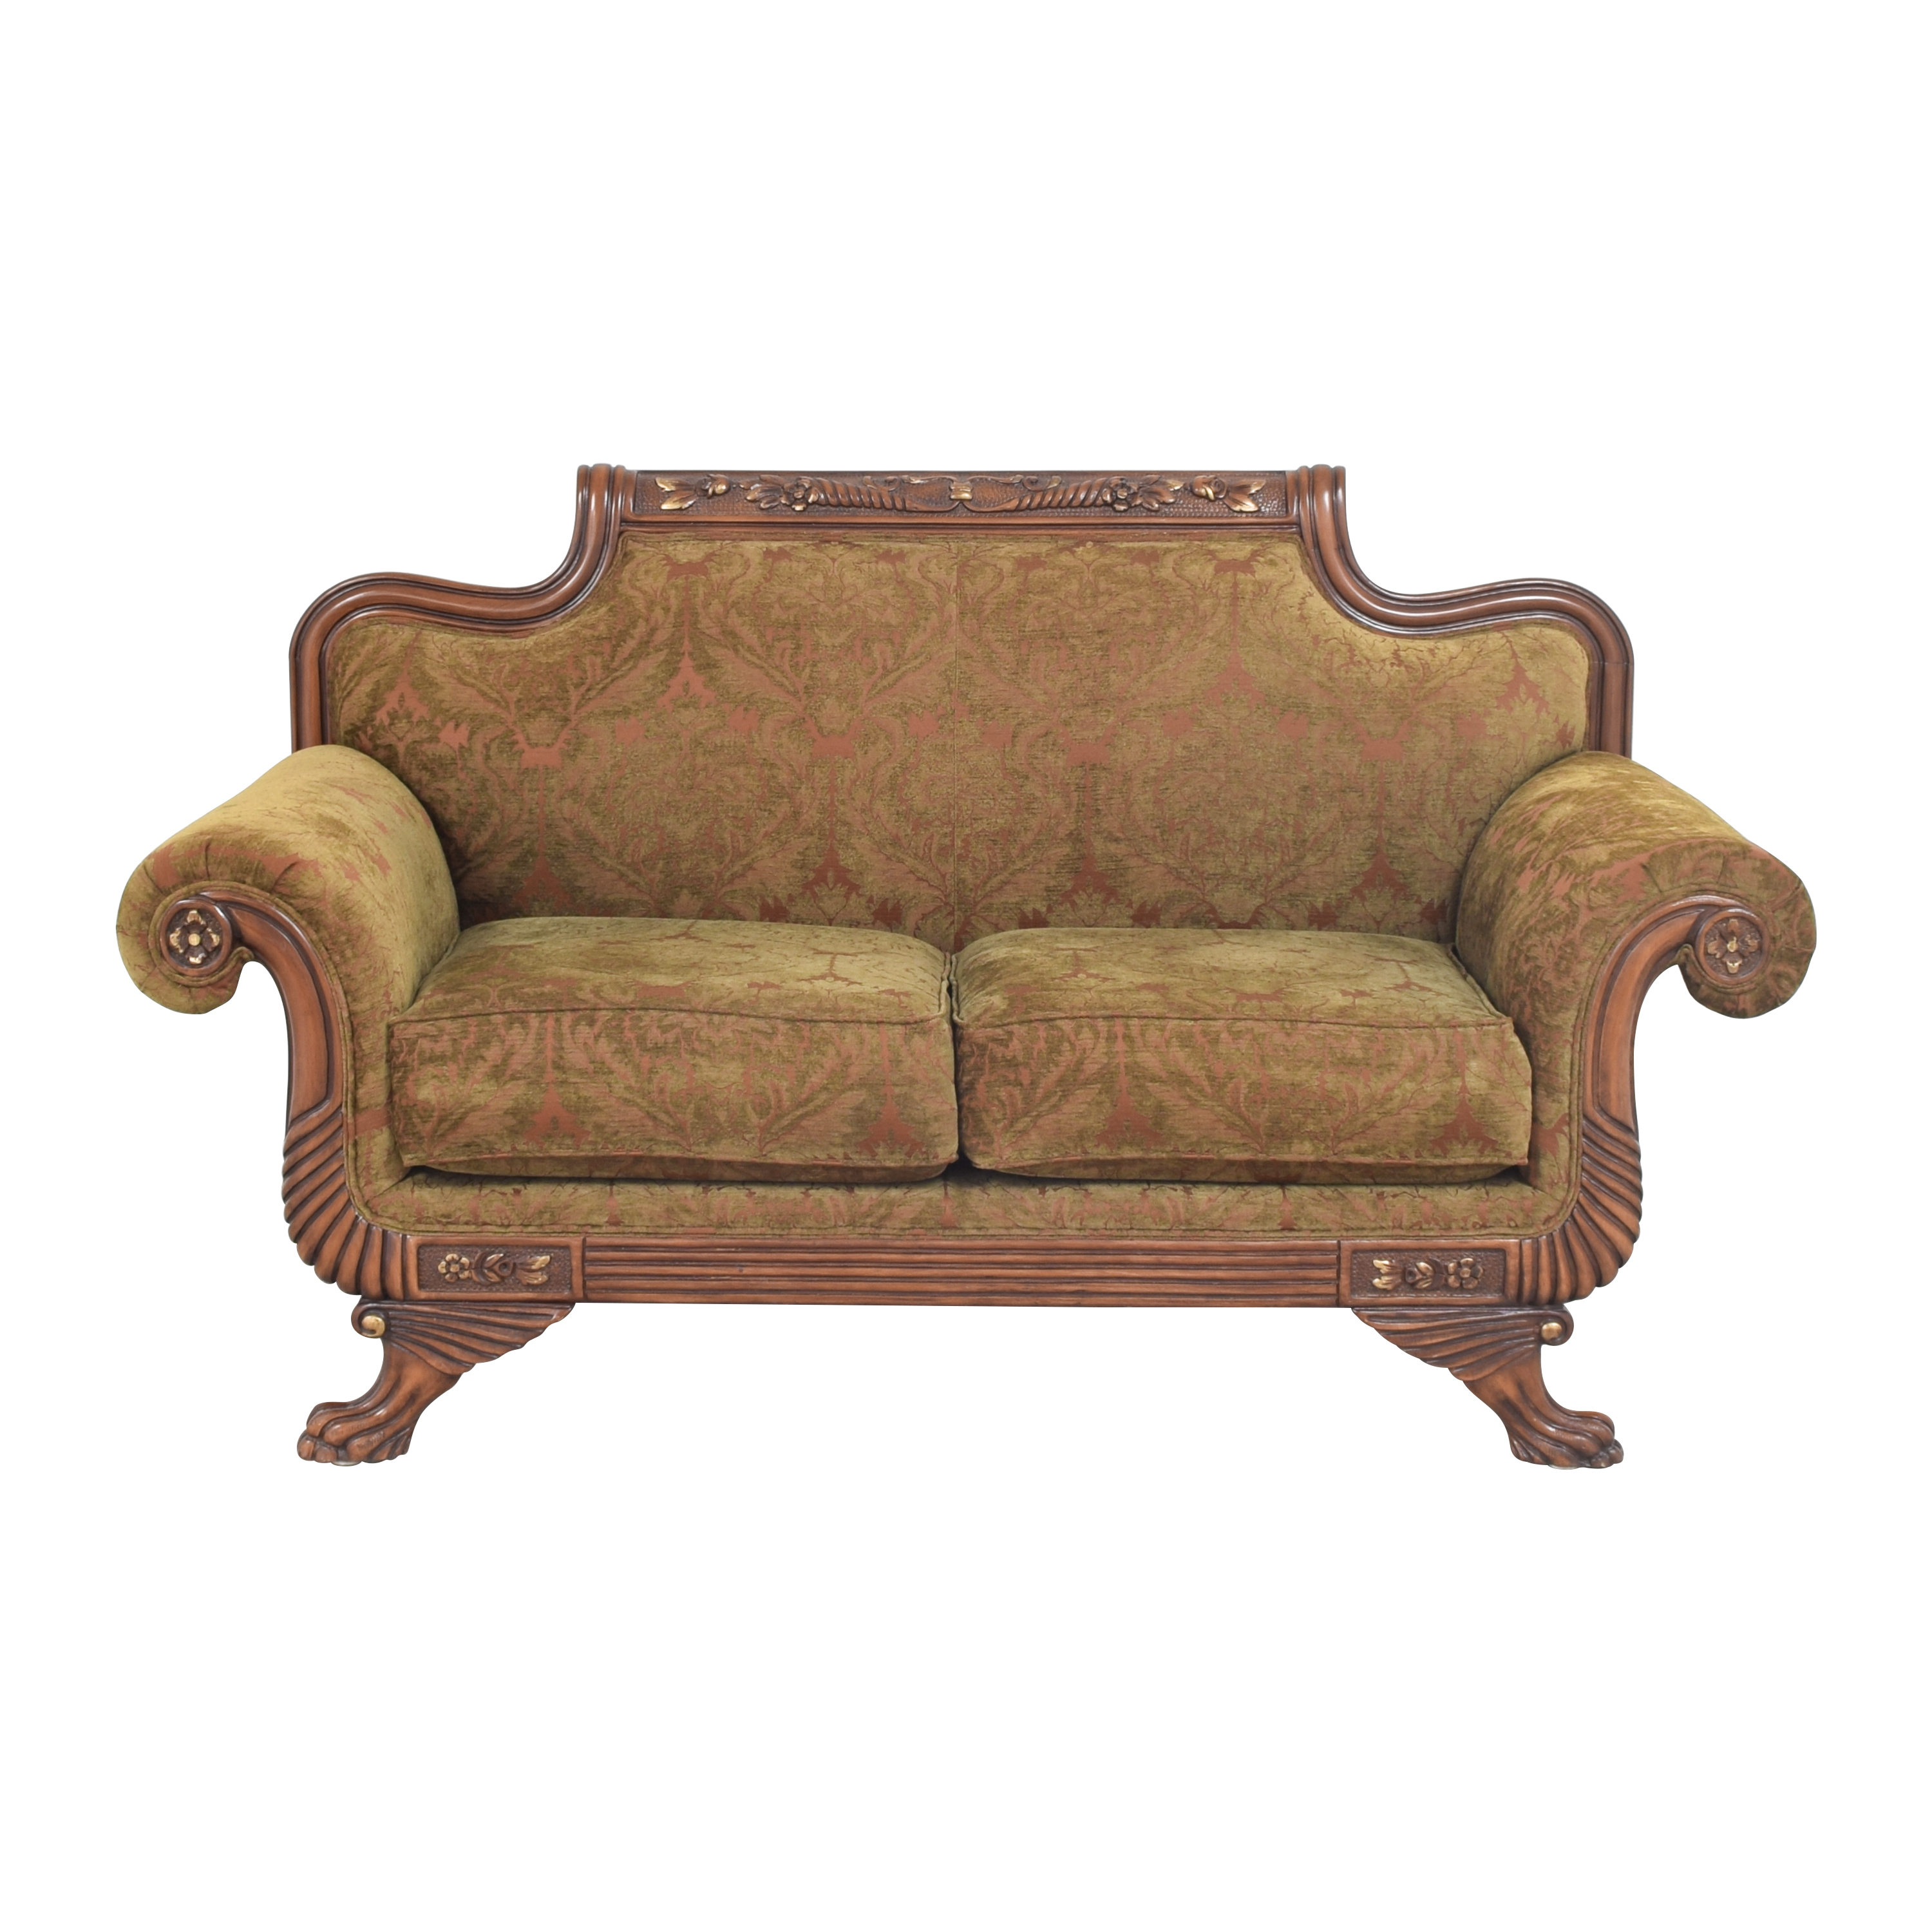 Francesca Imports Francesca Imports Duncan Phyfe-Style Roll Arm Loveseat used